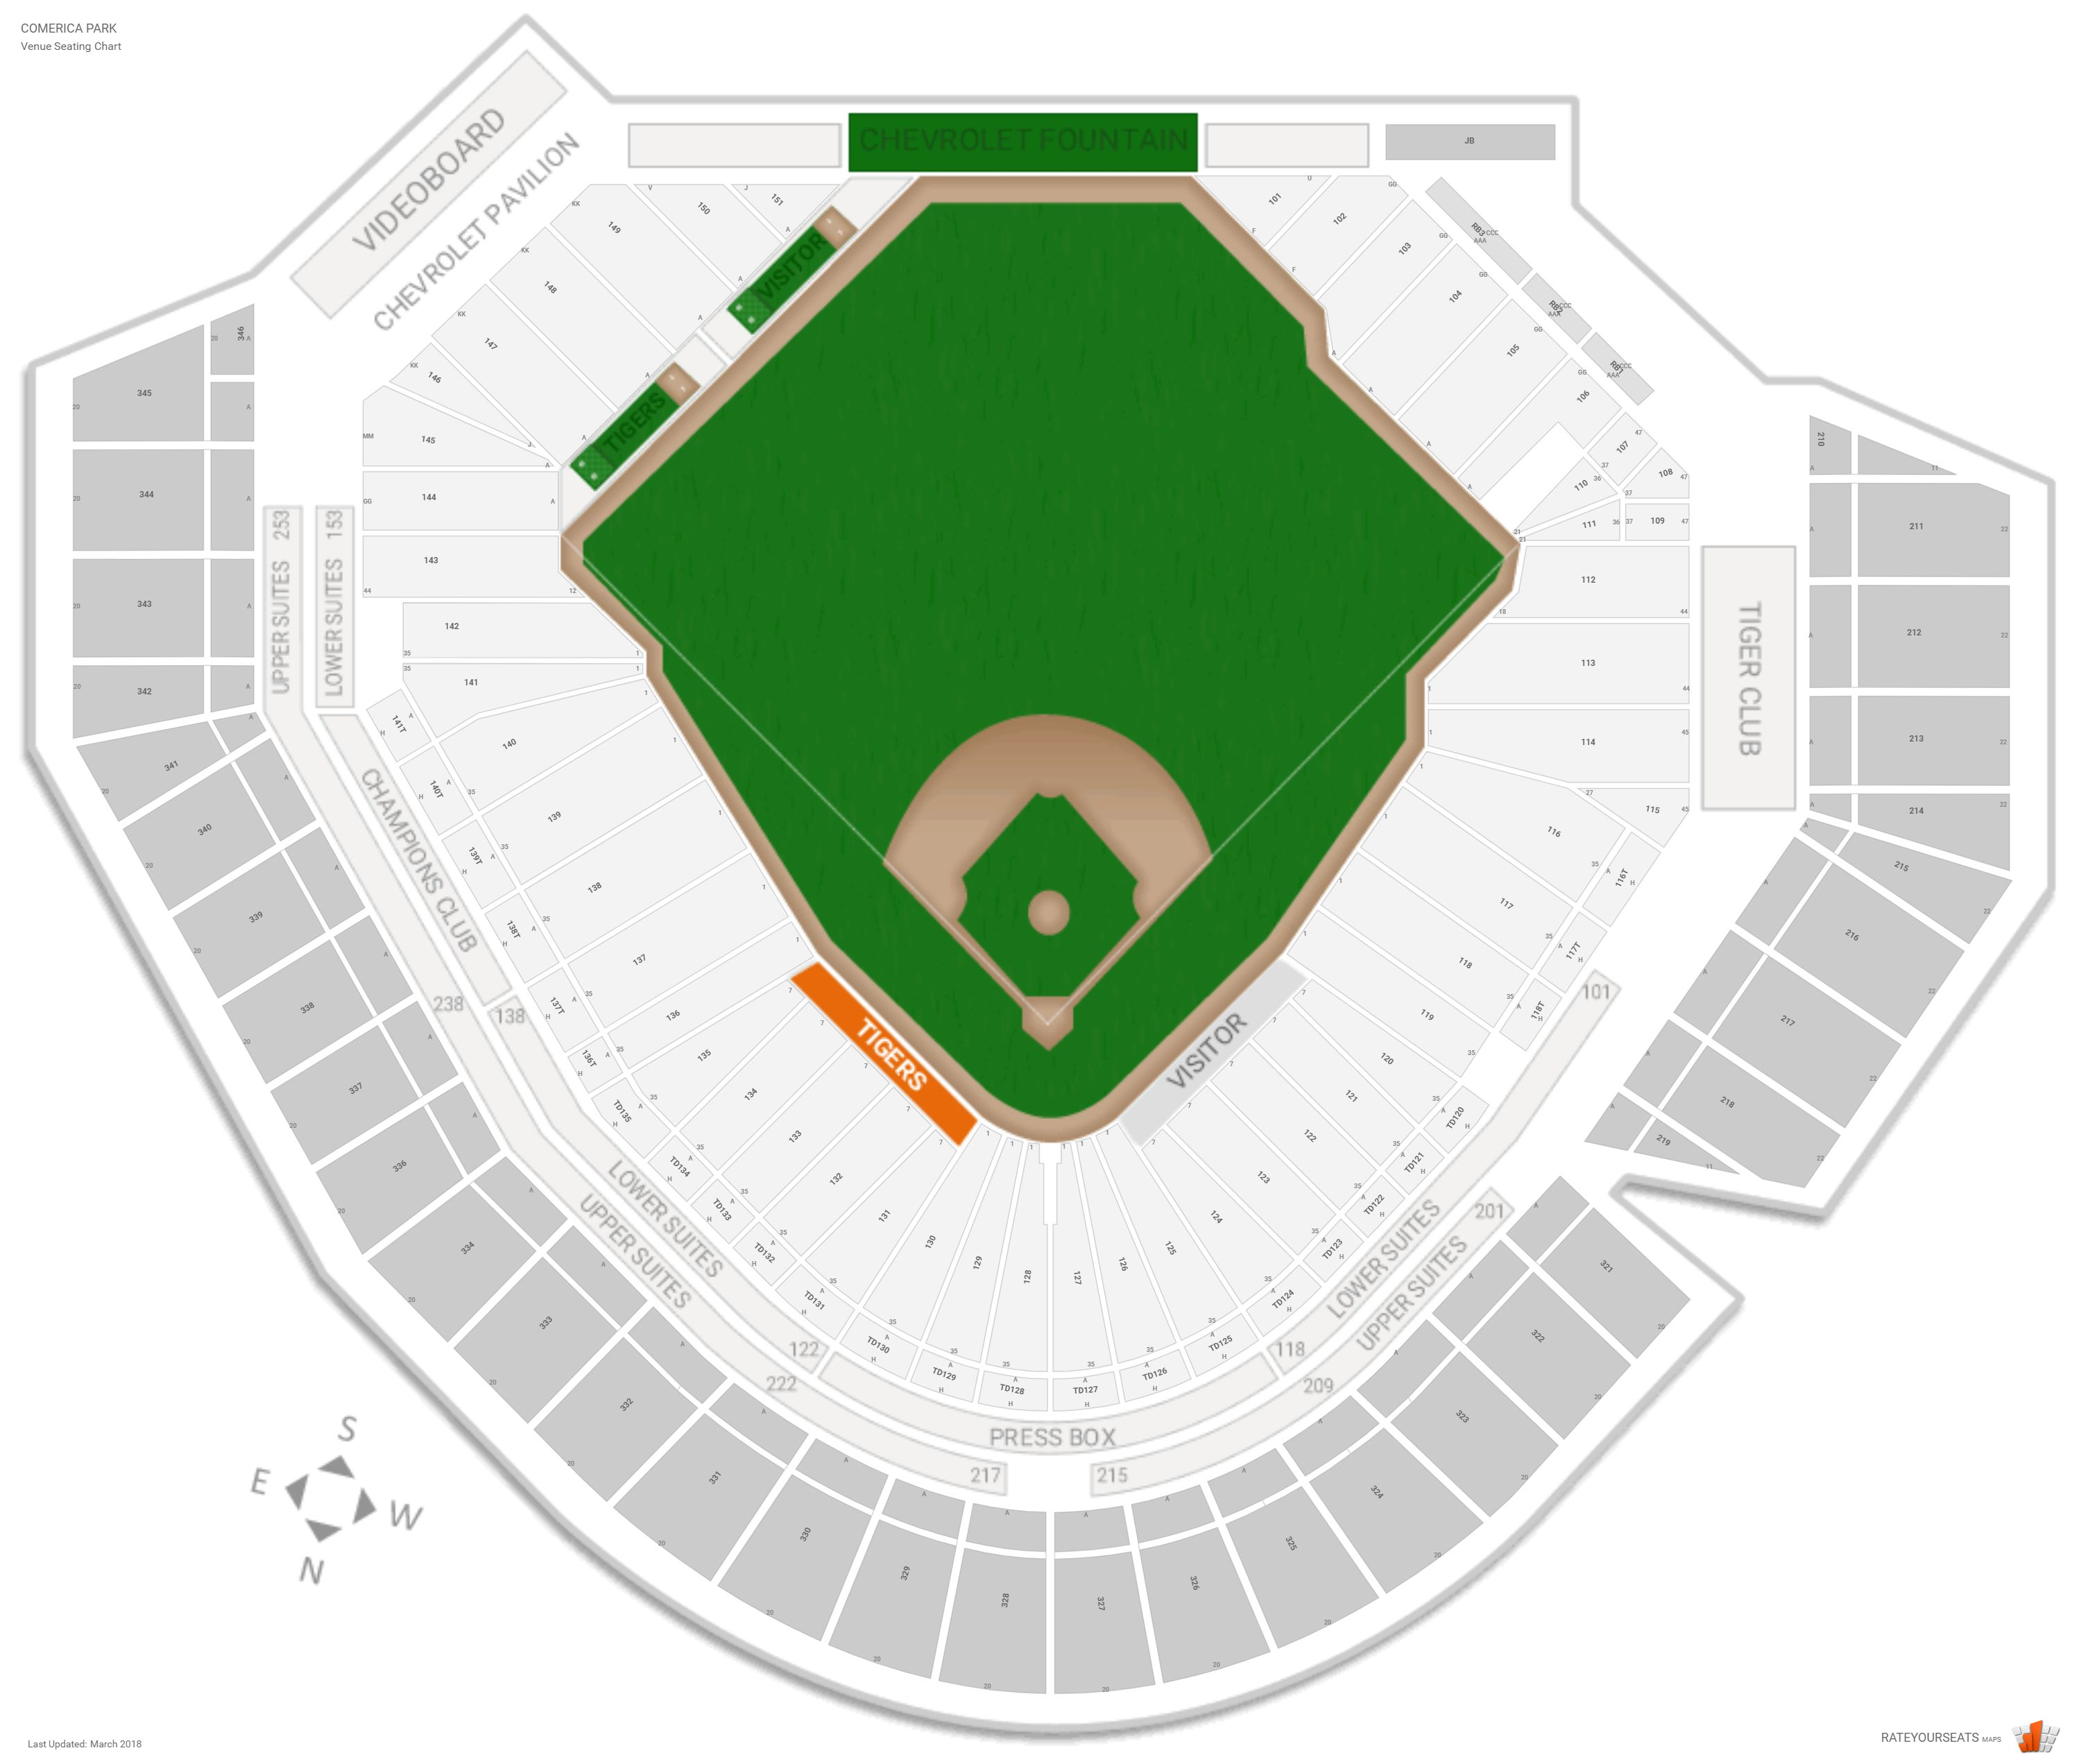 Comerica Park Seating Chart With Row Numbers